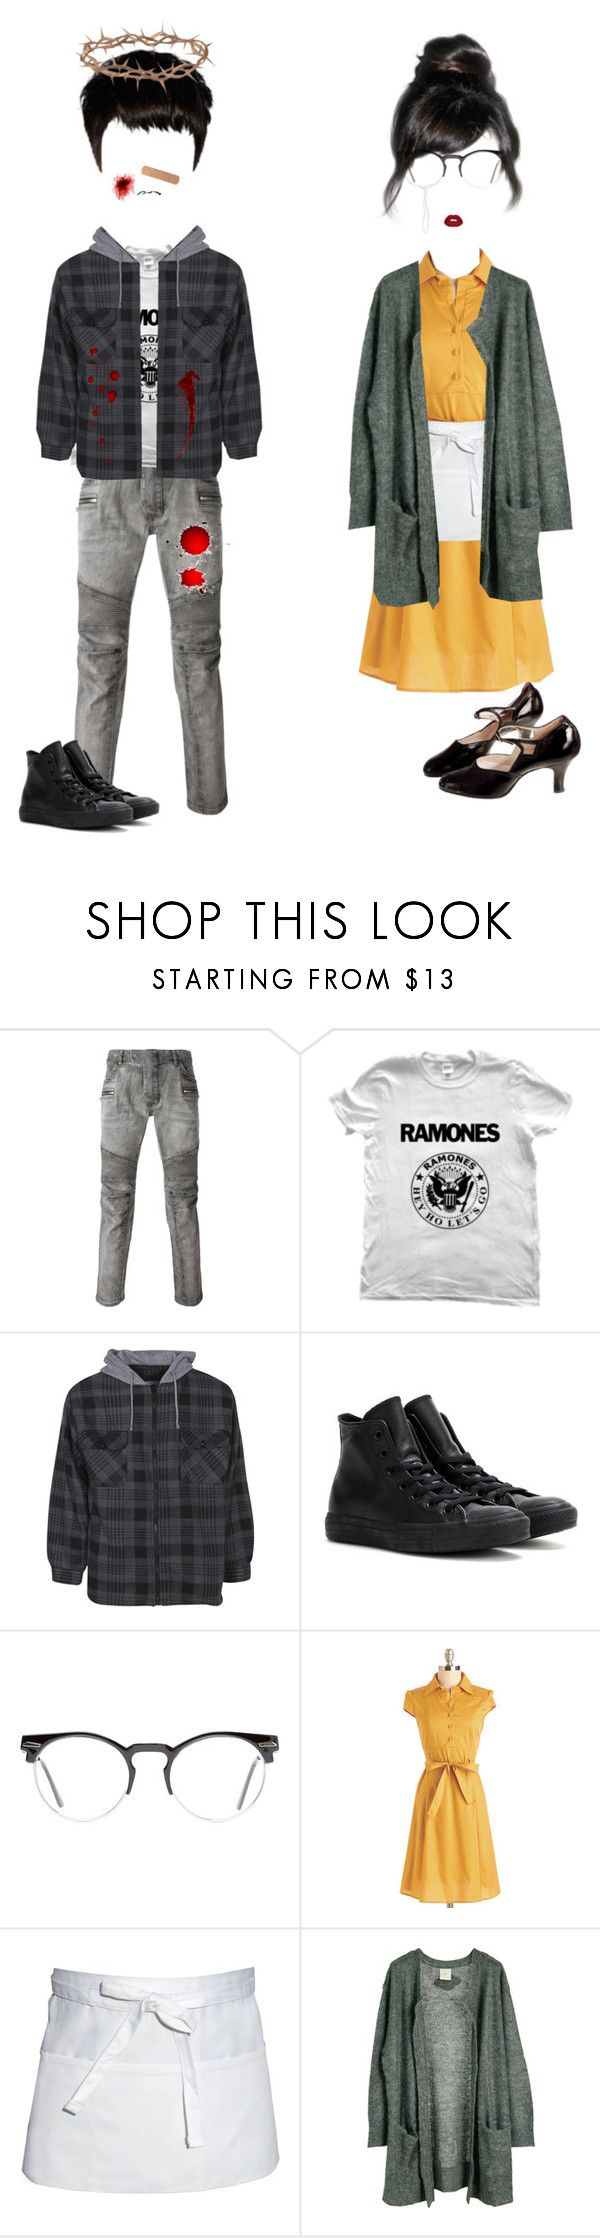 """""I don't feel any shame, I won't apologize."" (The Scourging at the Pillar)"" by scleris-corasin ❤ liked on Polyvore featuring Balmain, Boohoo, Converse, Rockstar Sushi, Spitfire, POL, Chef Works and Julie Fagerholt Heartmade"